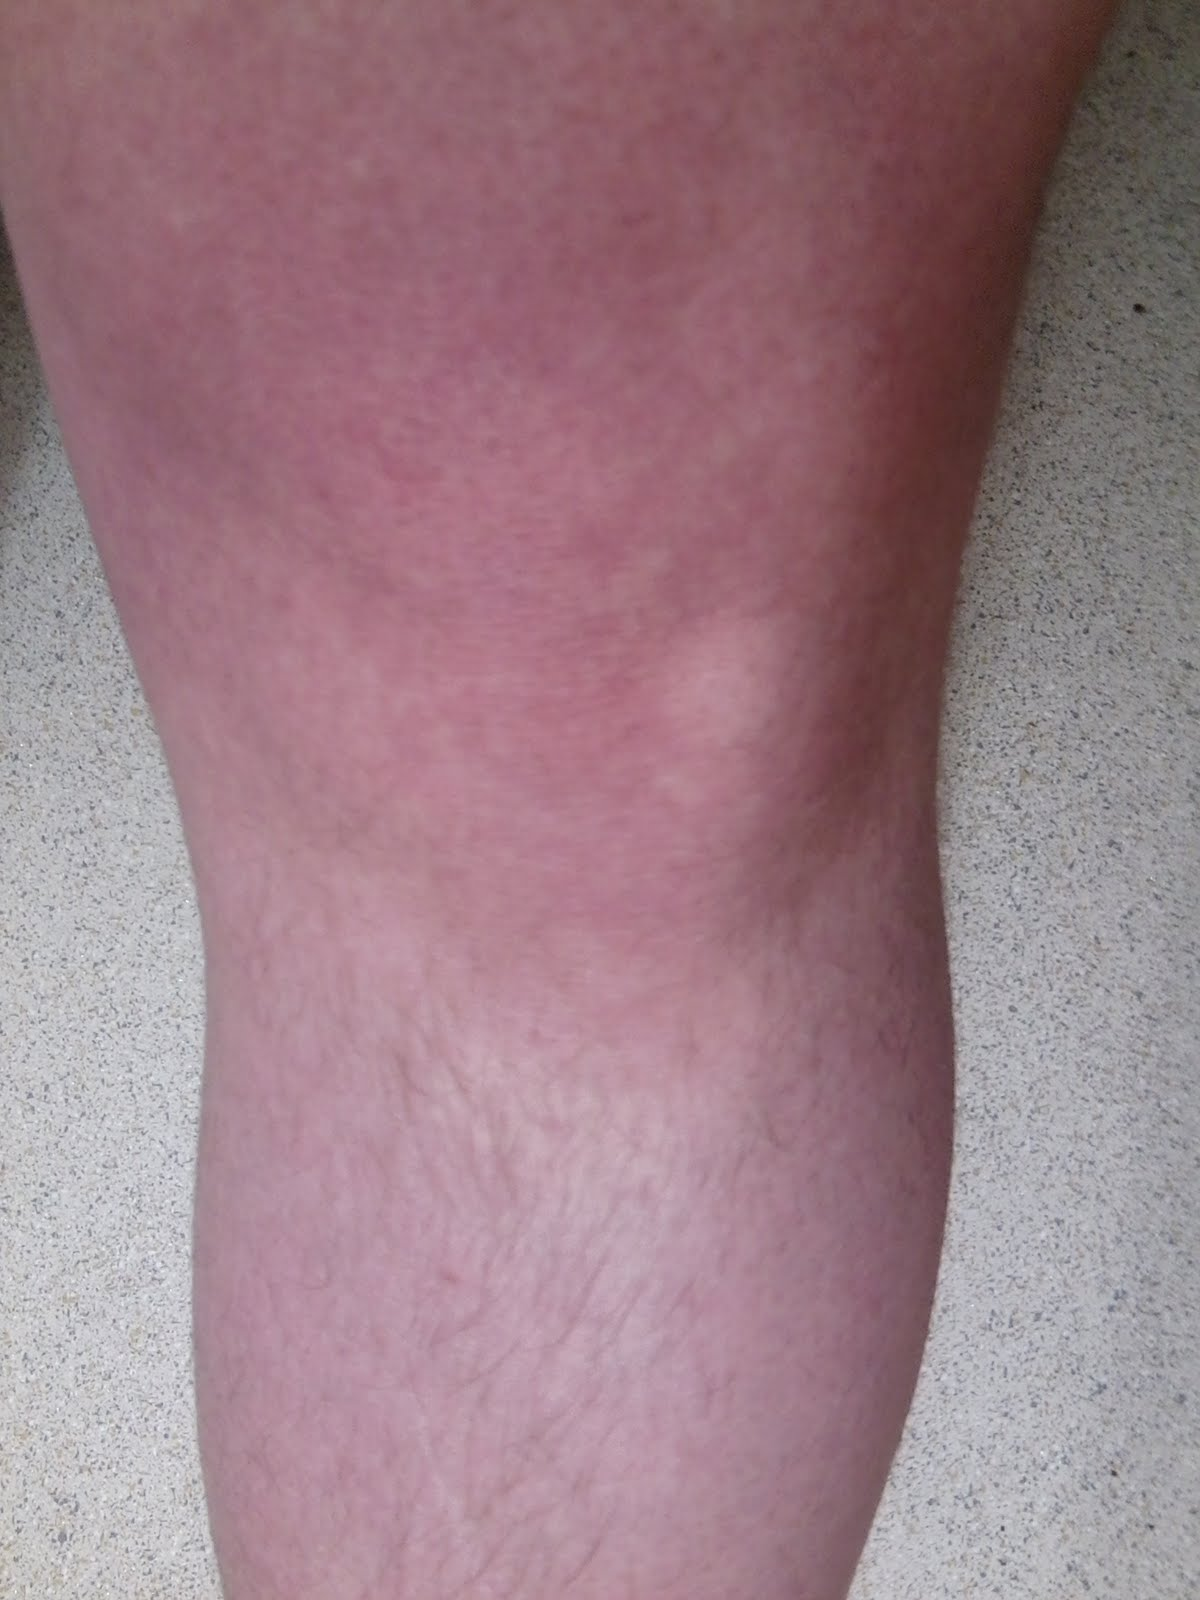 how to get swelling off your knee